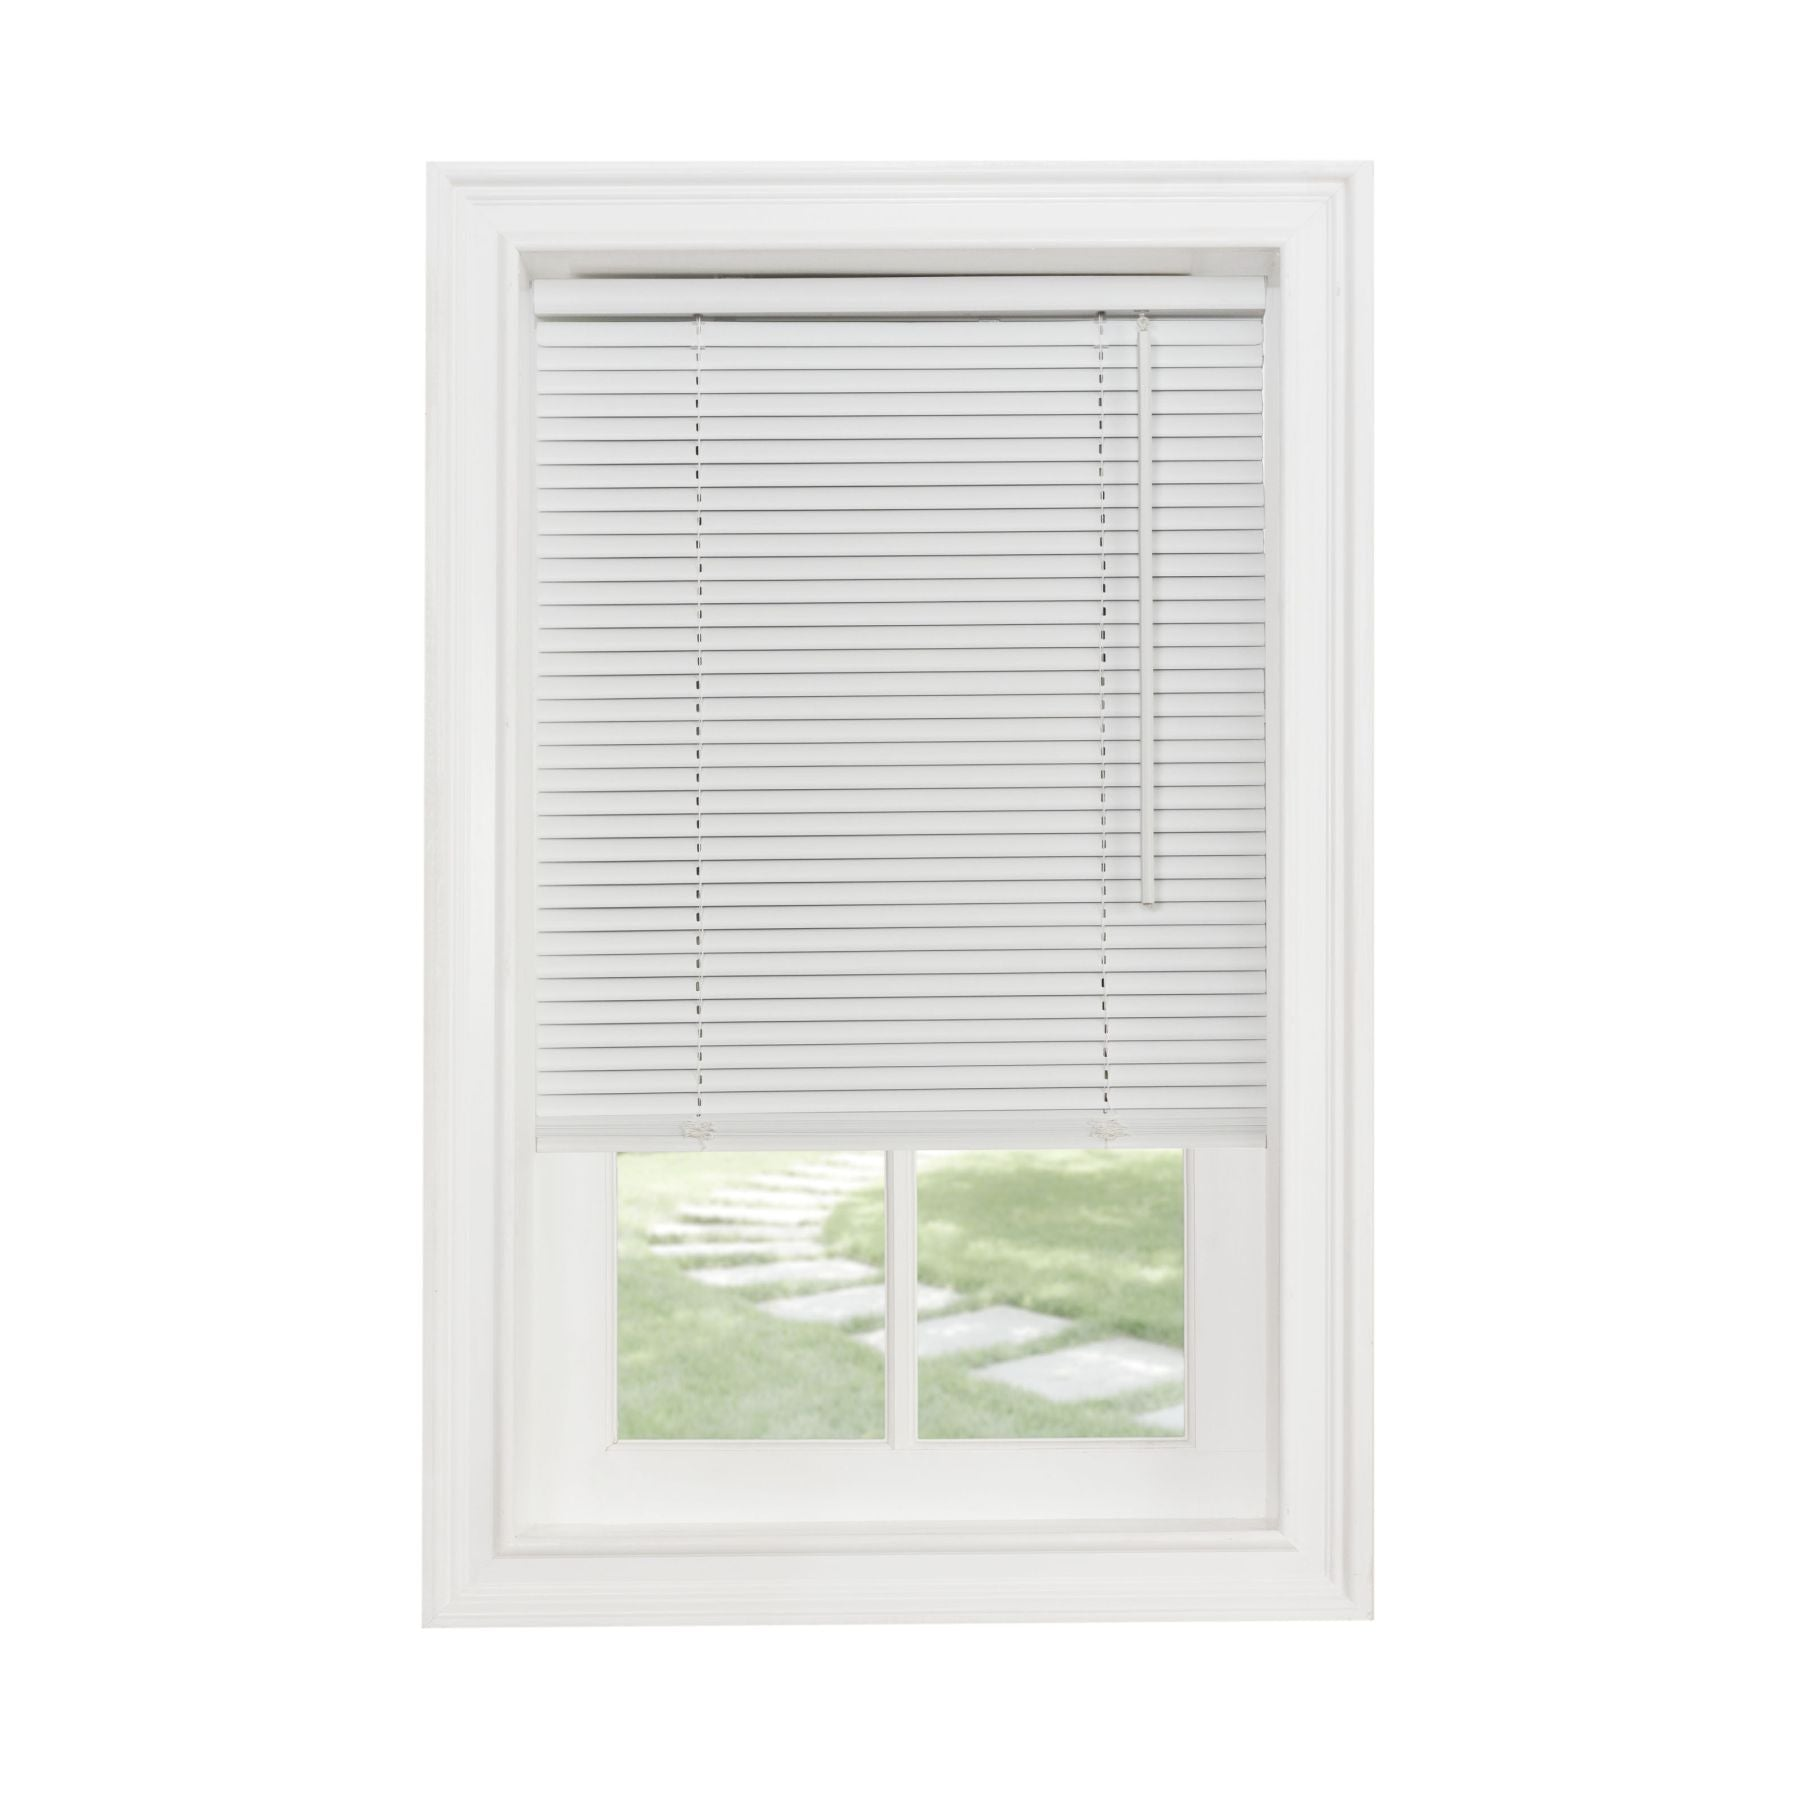 "Traditional Elegance Cordless Sunrise 1"" Light Filtering Mini Blind 36x64 - White"